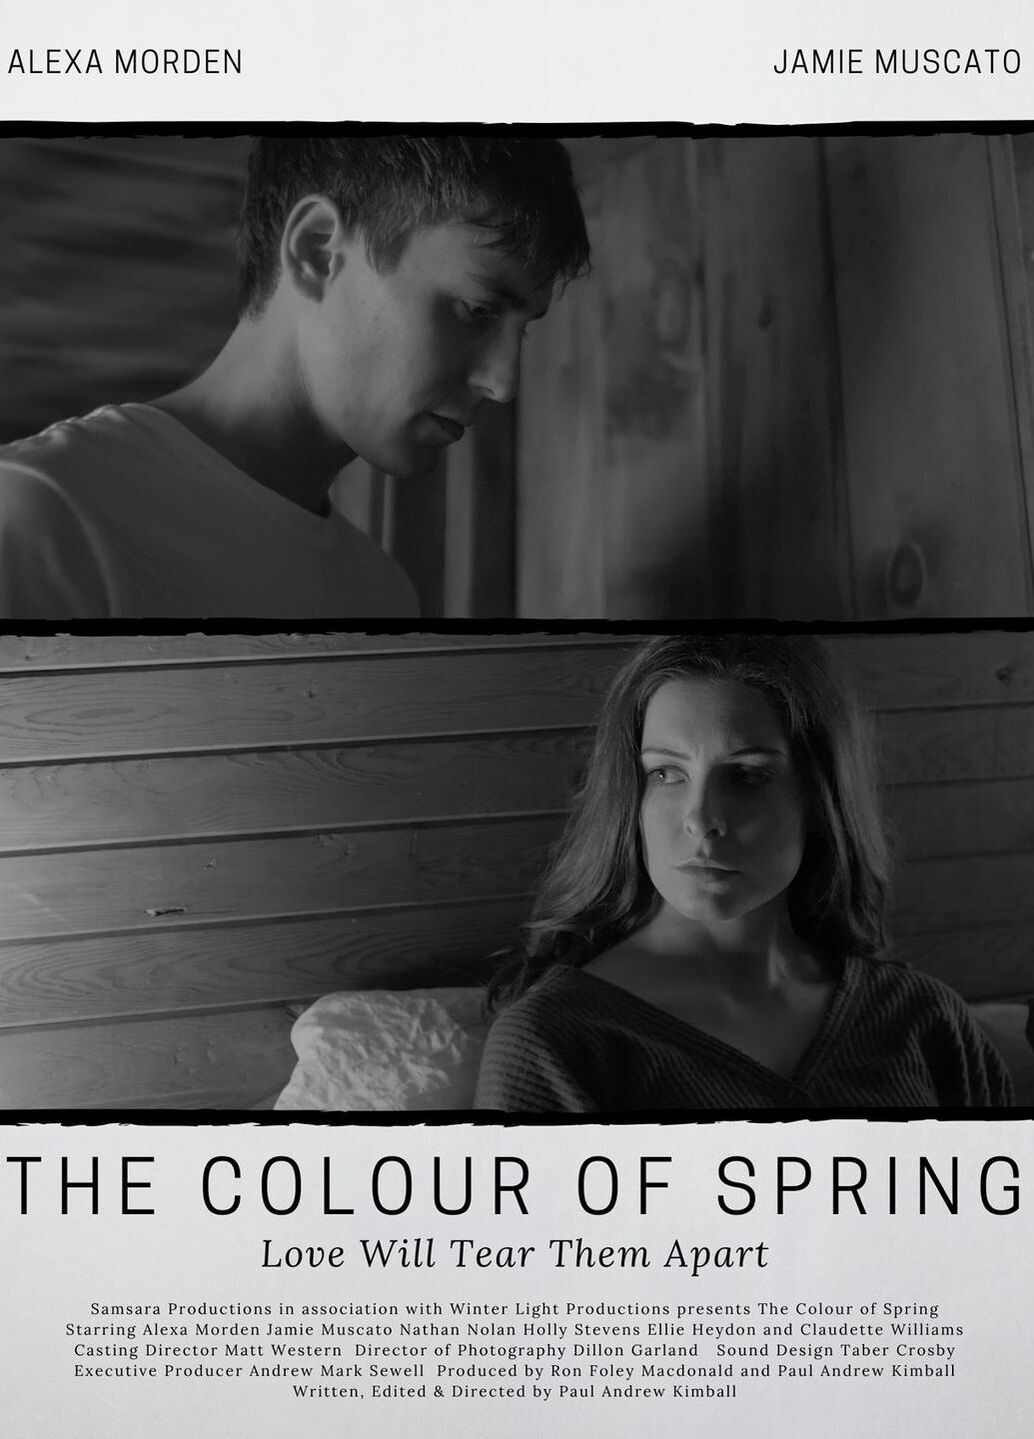 The Colour of Spring Poster